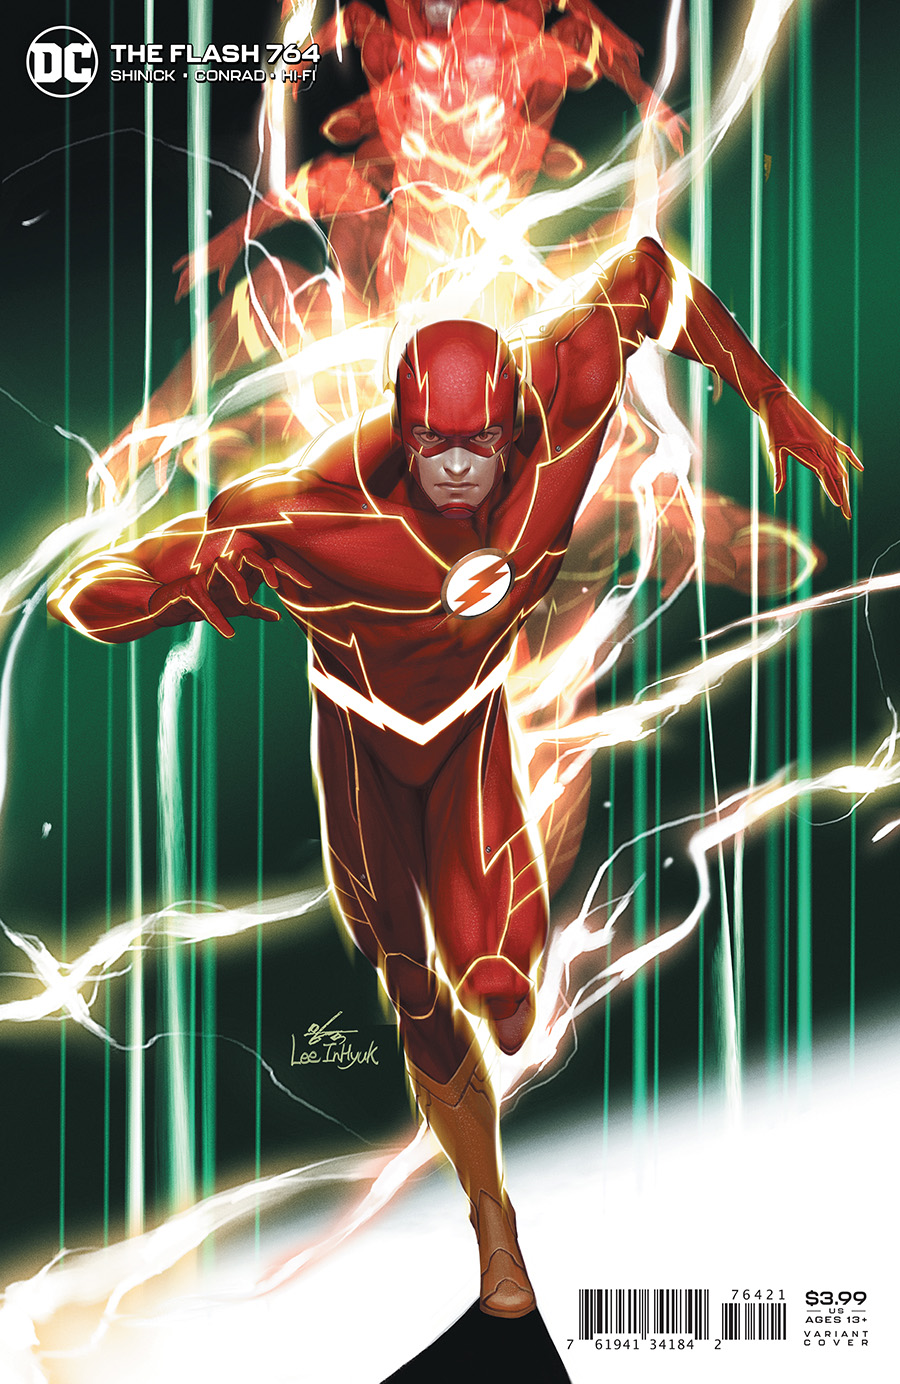 Flash Vol 1 #764 Cover B Inhyuk Lee Variant